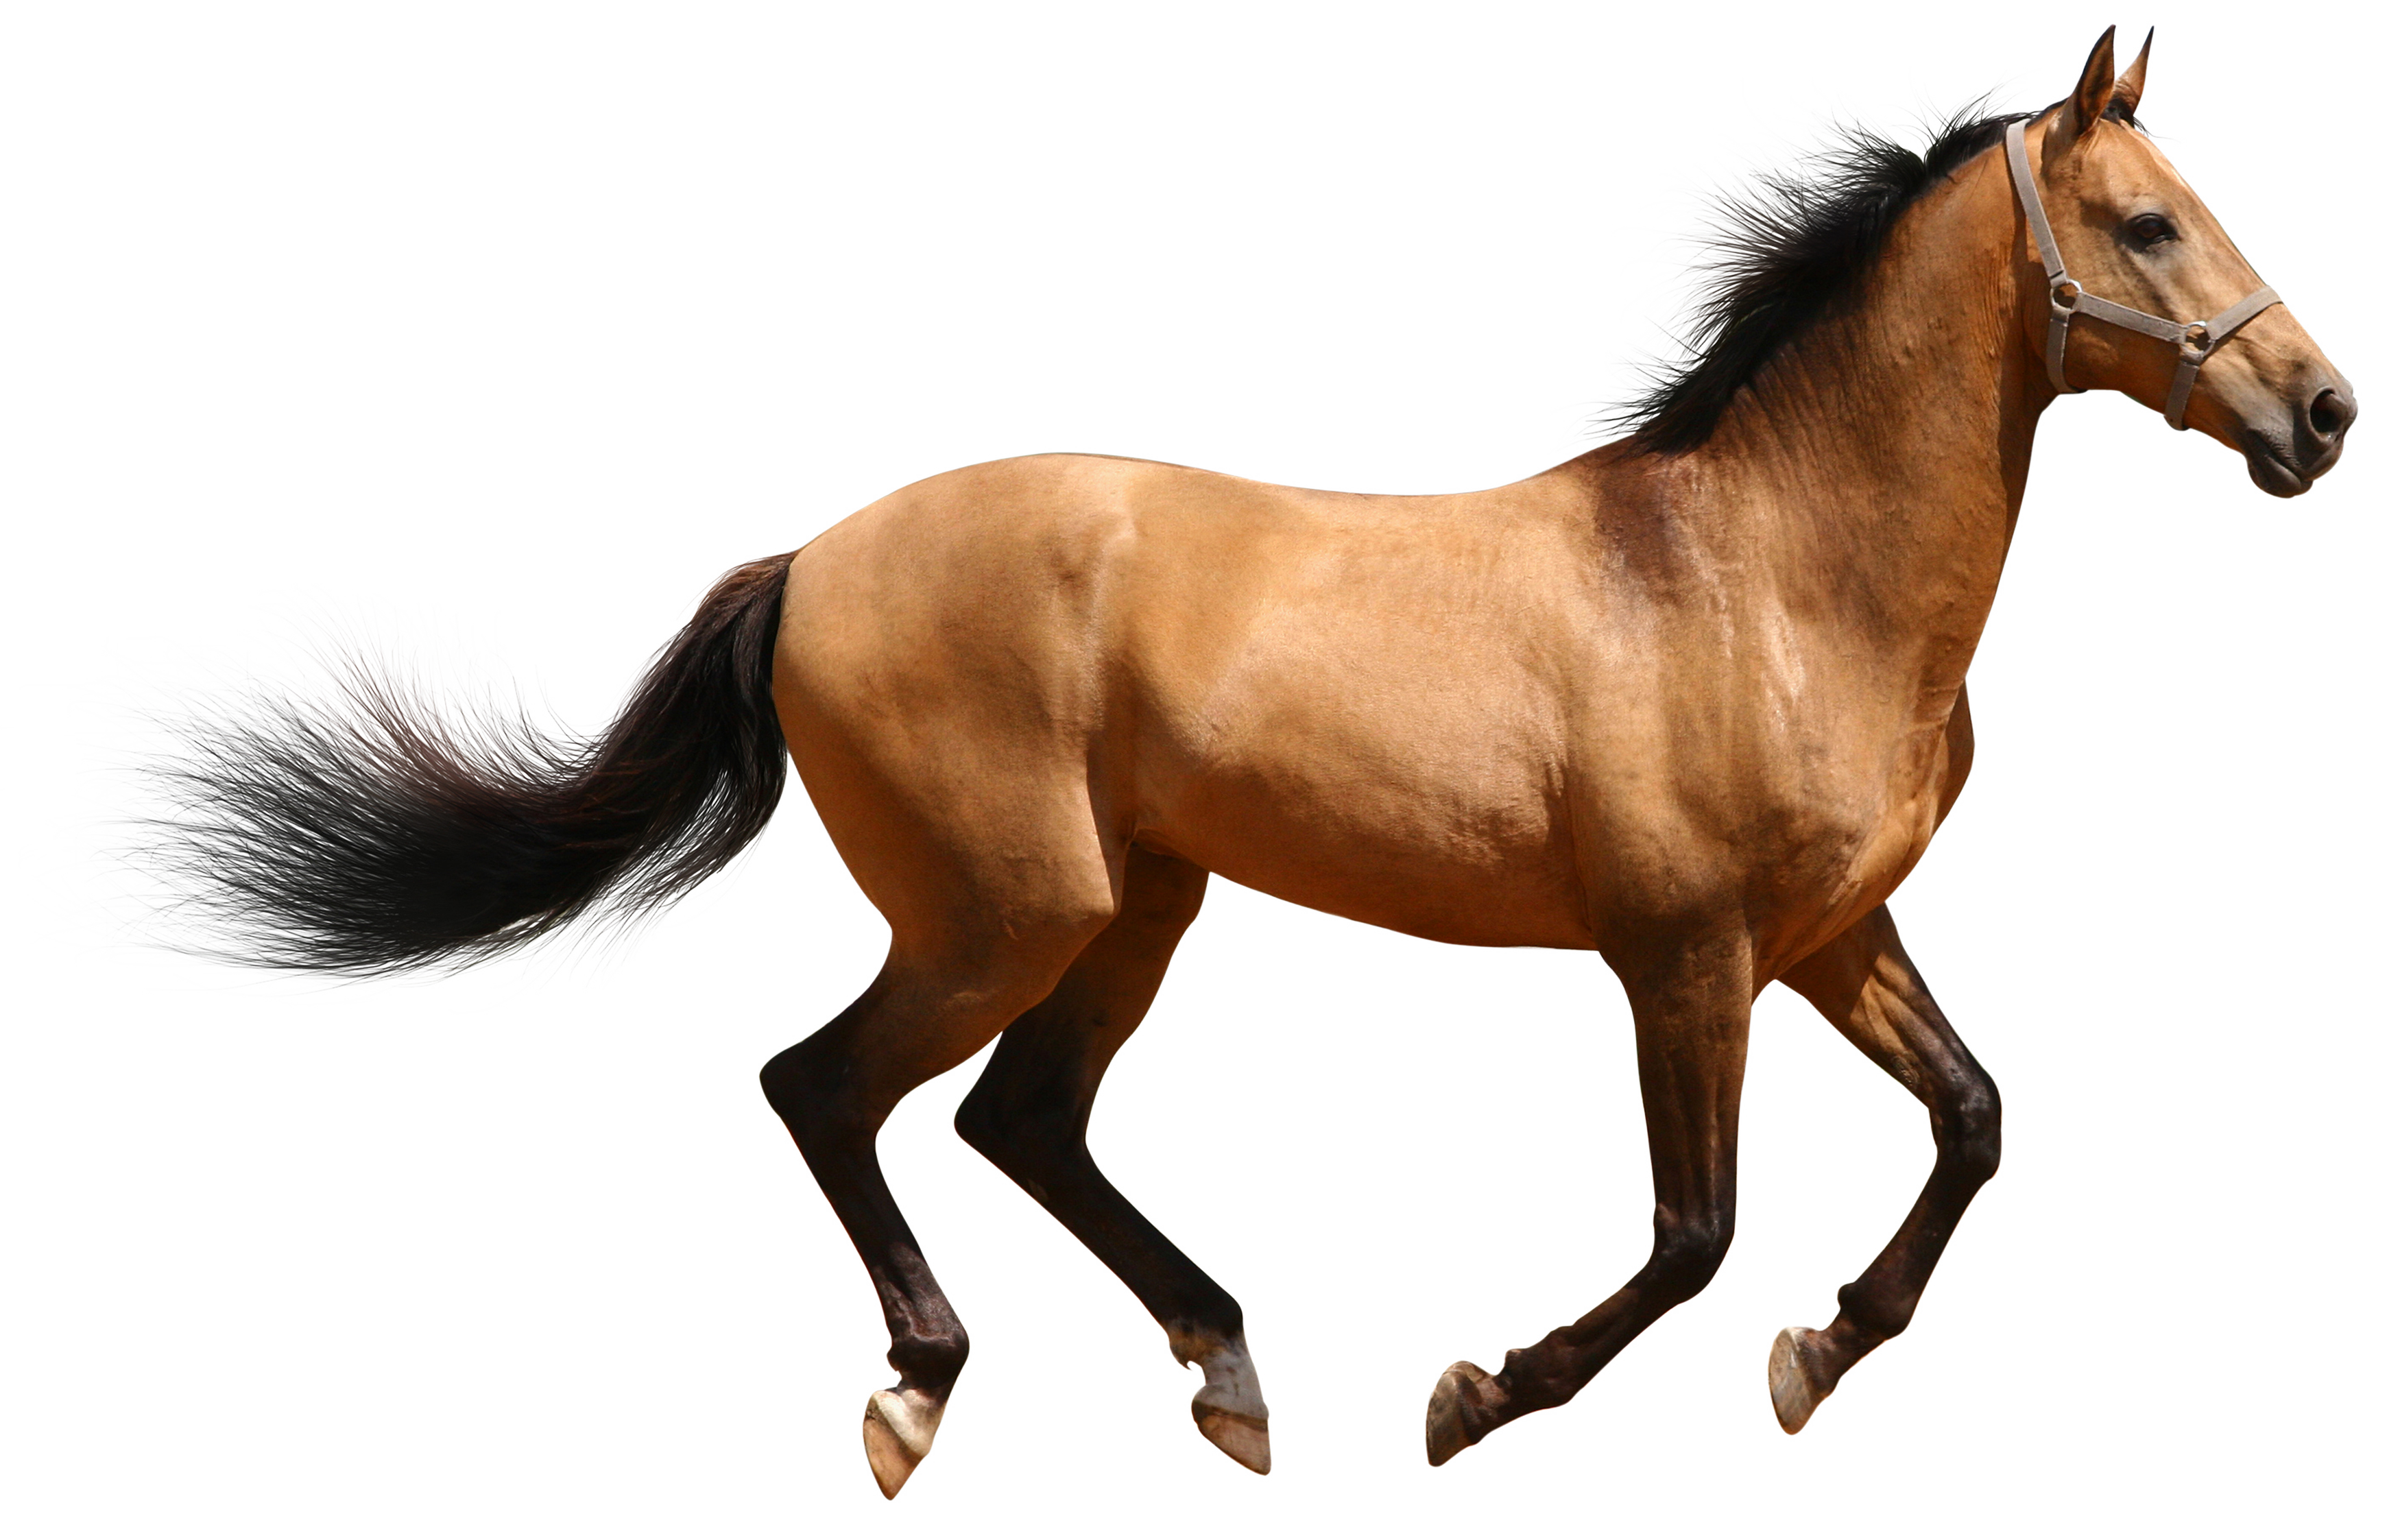 Animals png images. Transparent brown horse gallery